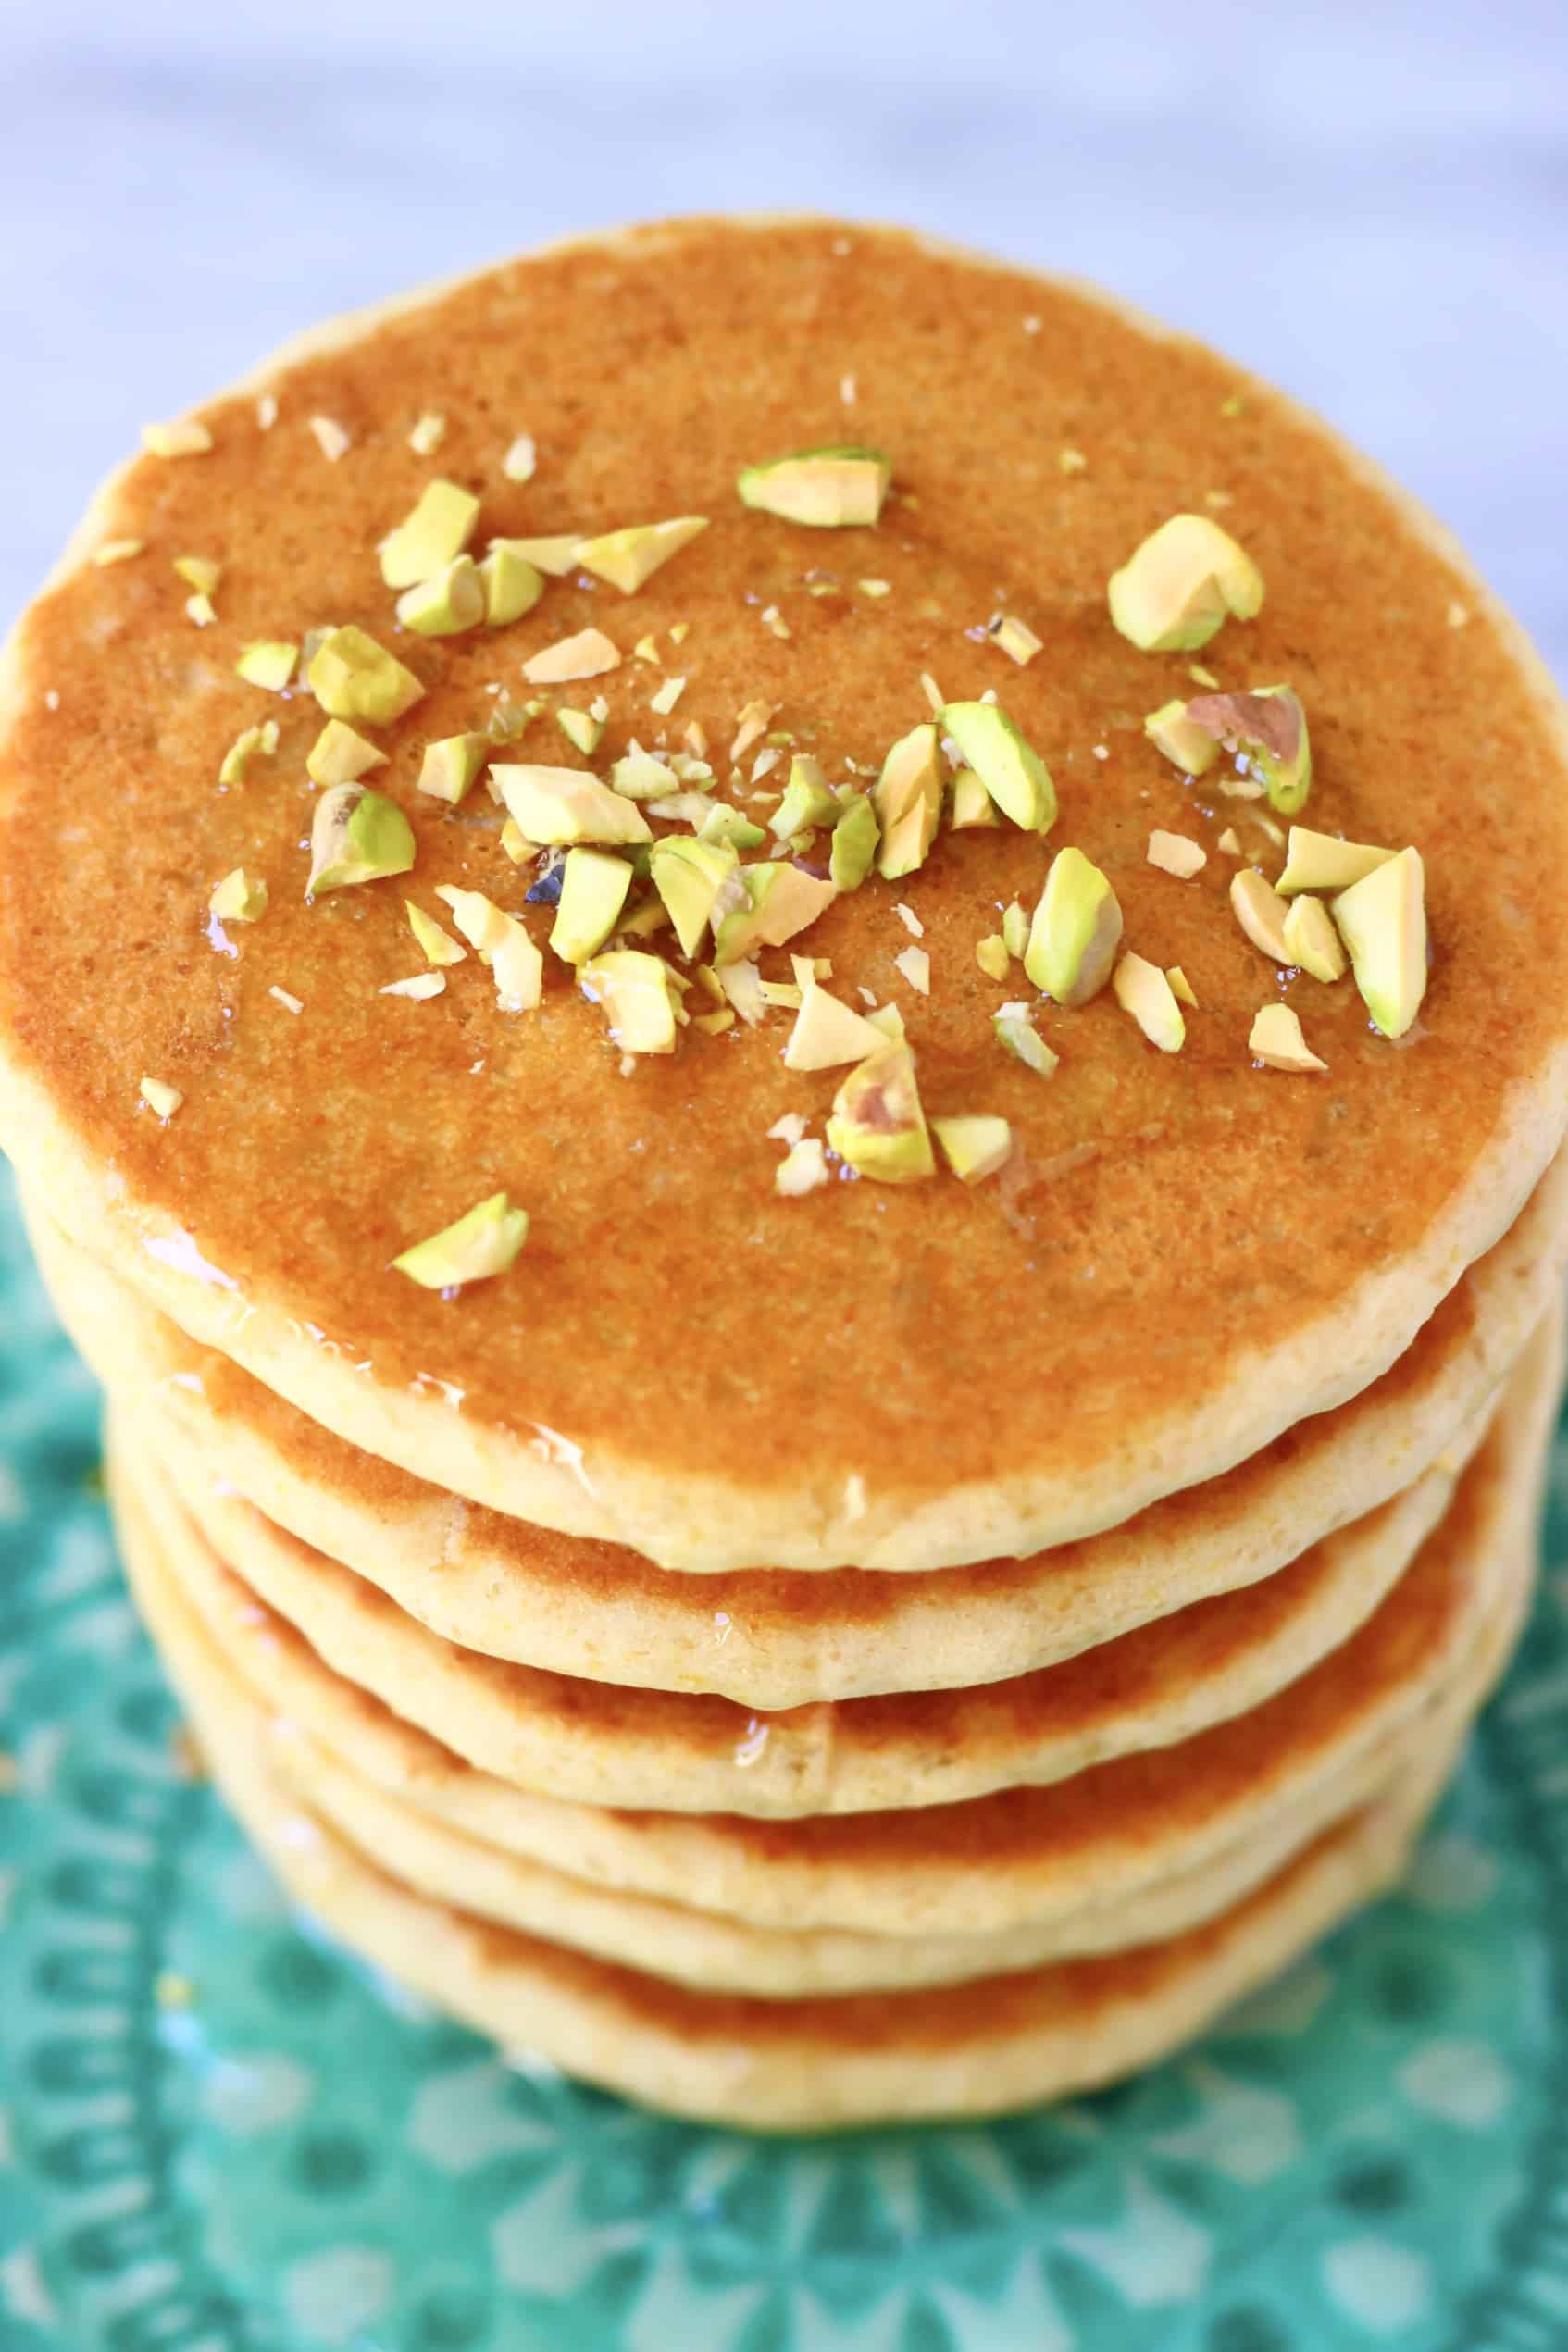 A stack of flaxseed pancakes on a plate topped with syrup and chopped pistachios